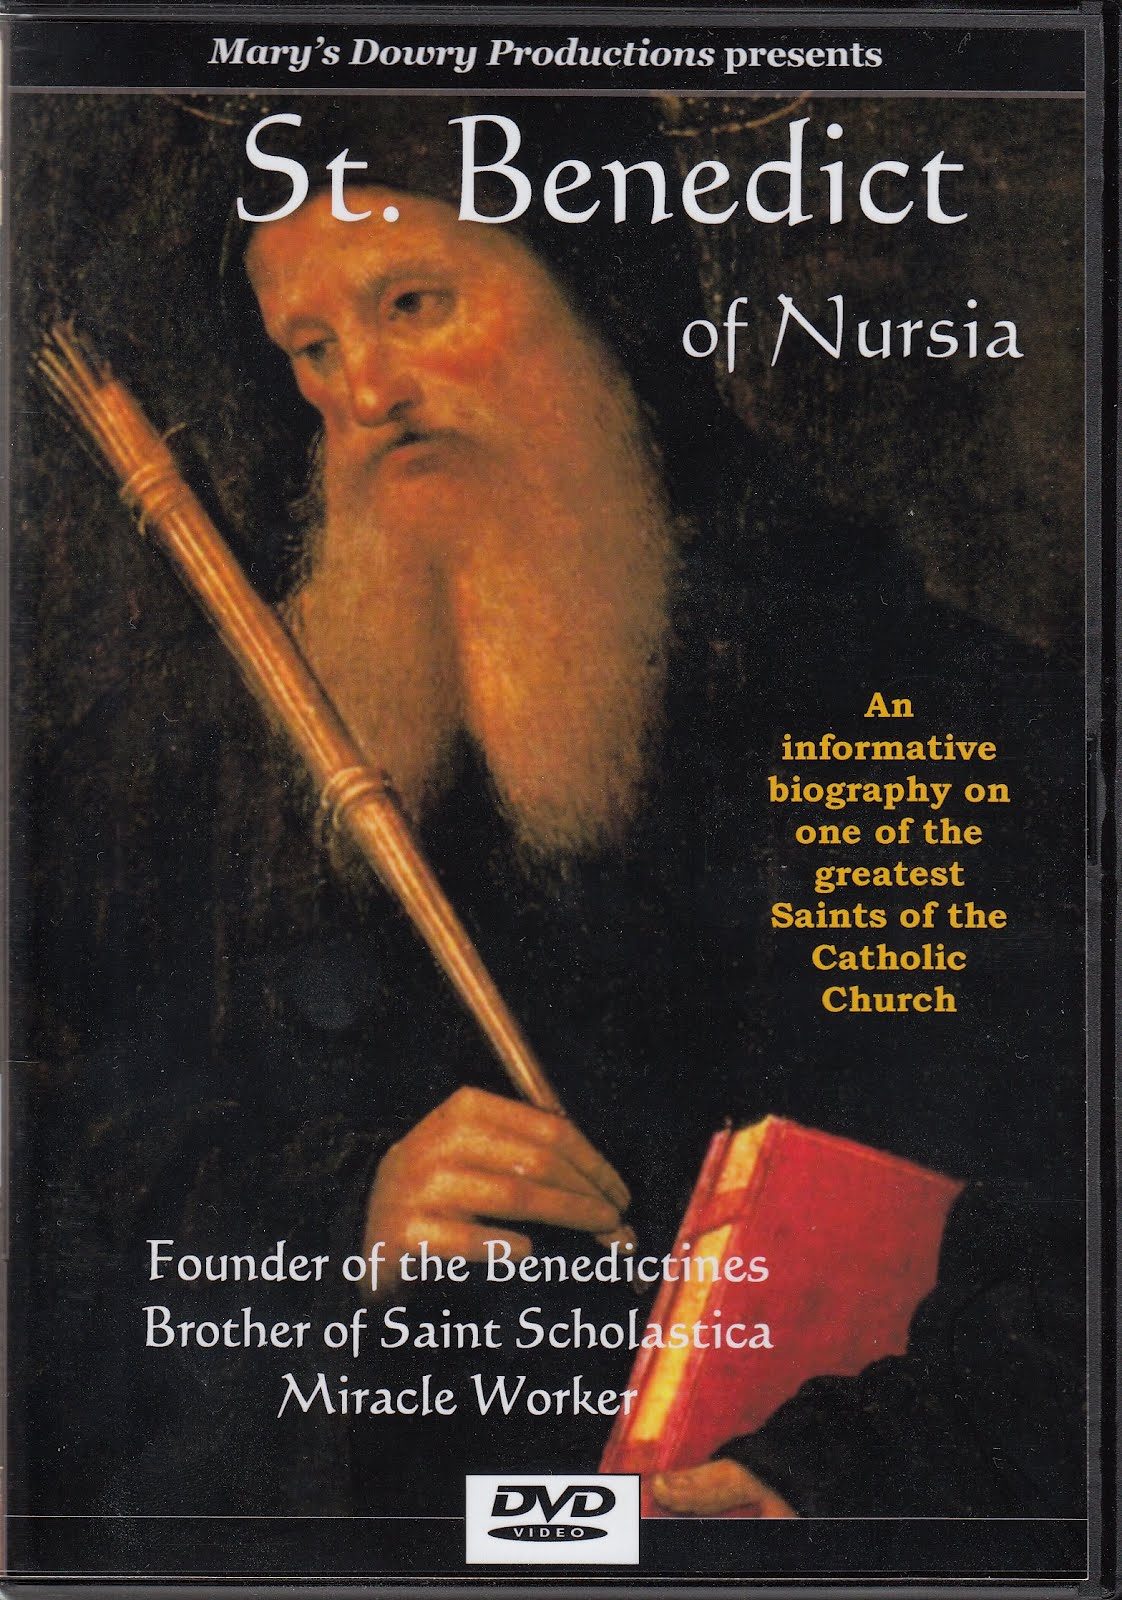 a biography of st benedict of nursia Benedict of nursia ( latin : benedictus de nursia  italian : benedetto da norcia  c 2 march 480 – 543 or 547 ad) is a christian saint, who is venerated in the eastern orthodox churches , the catholic church , the oriental orthodox churches , the anglican communion and old catholic churches .